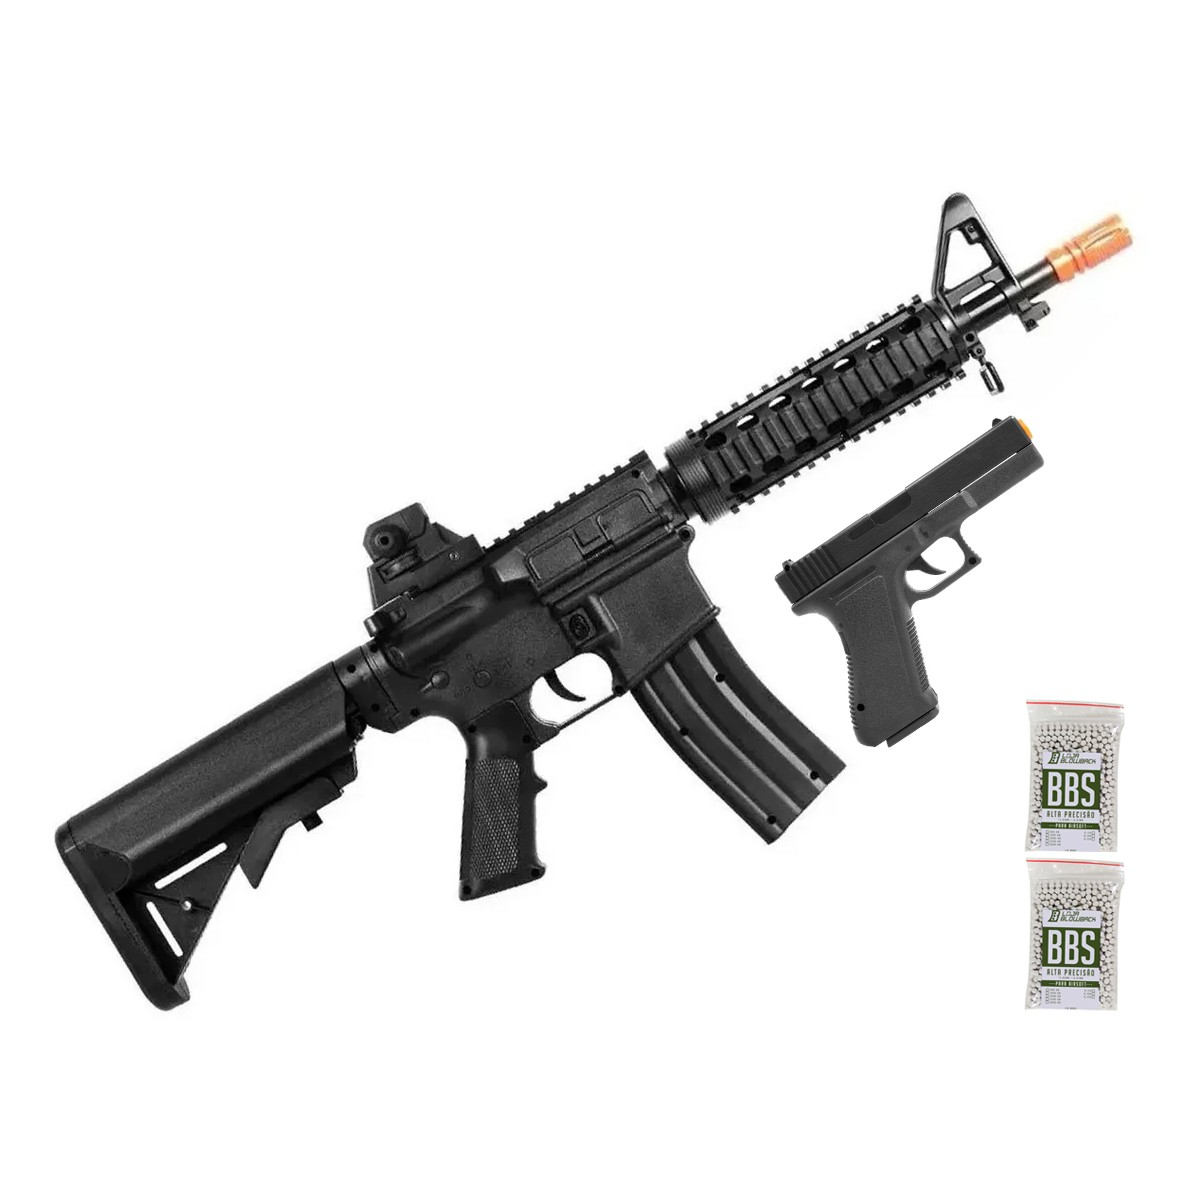 Airsoft Kit Pistola E Rifle M4a1 E Glock V307 Mola 6mm Kit 2